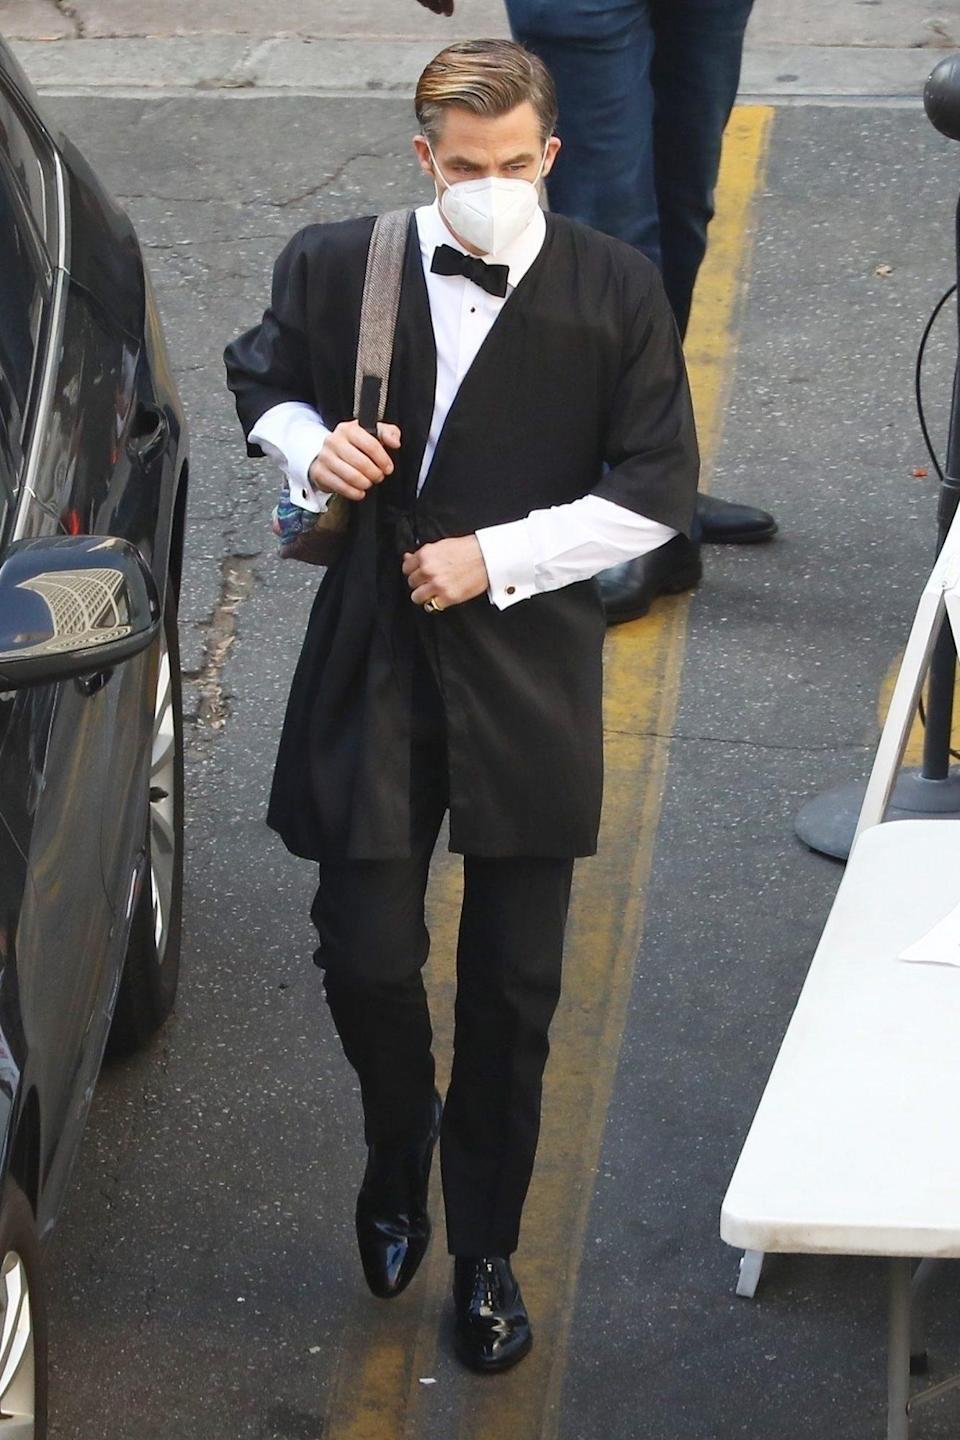 <p>Chris Pine is seen in a suit on the set of <i>Don't Worry Darling</i> in L.A. on Tuesday. </p>